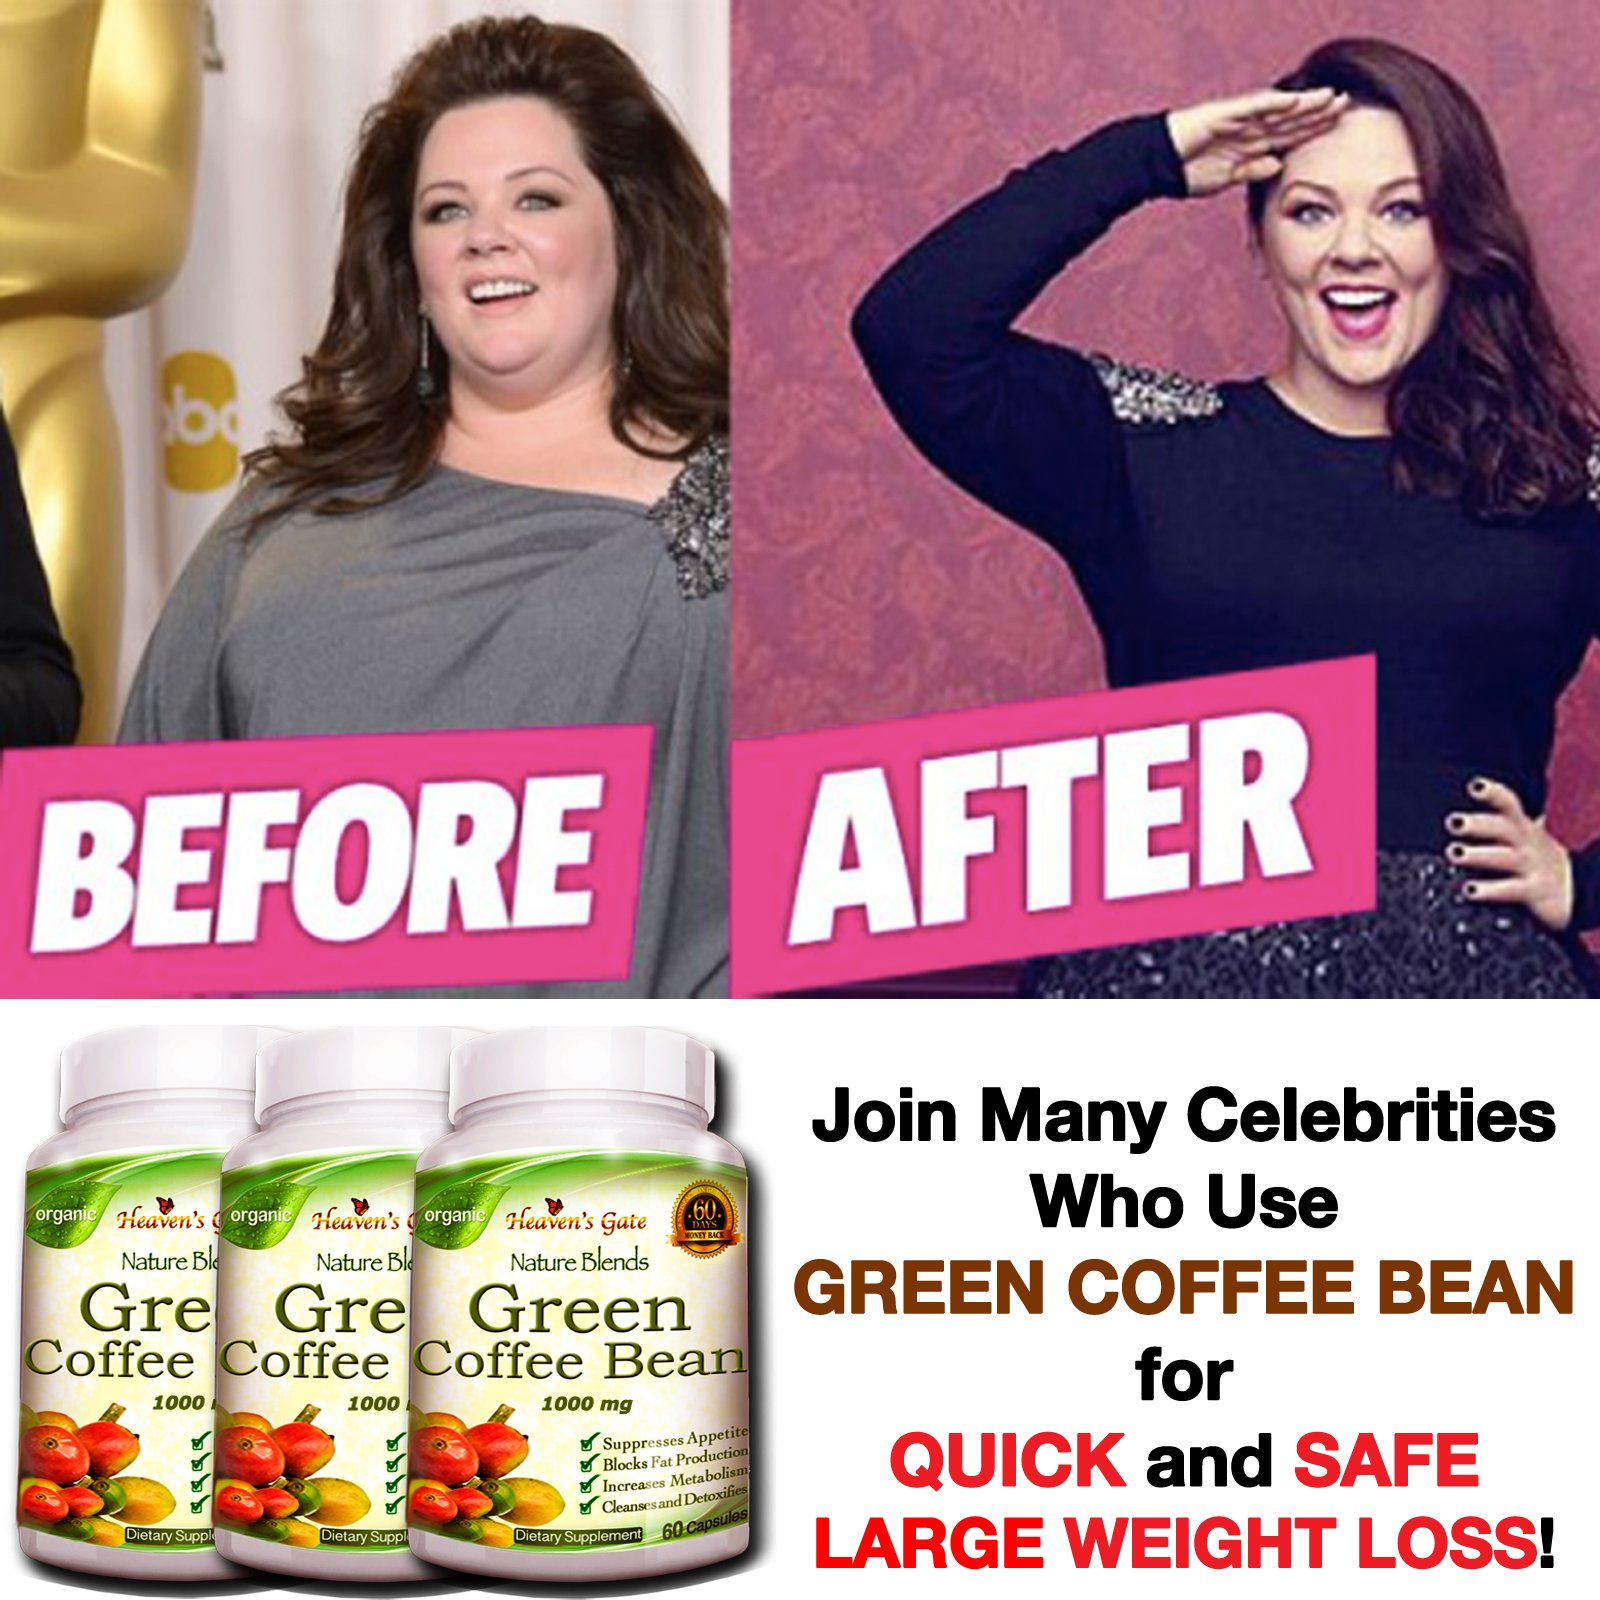 3 Green Coffee Bean Extract - 180 Capsules (1000 mg) 100% Pure - Max Strength Natural GCA Antioxidant Cleanse for Weight Loss by Affordable Natural Health